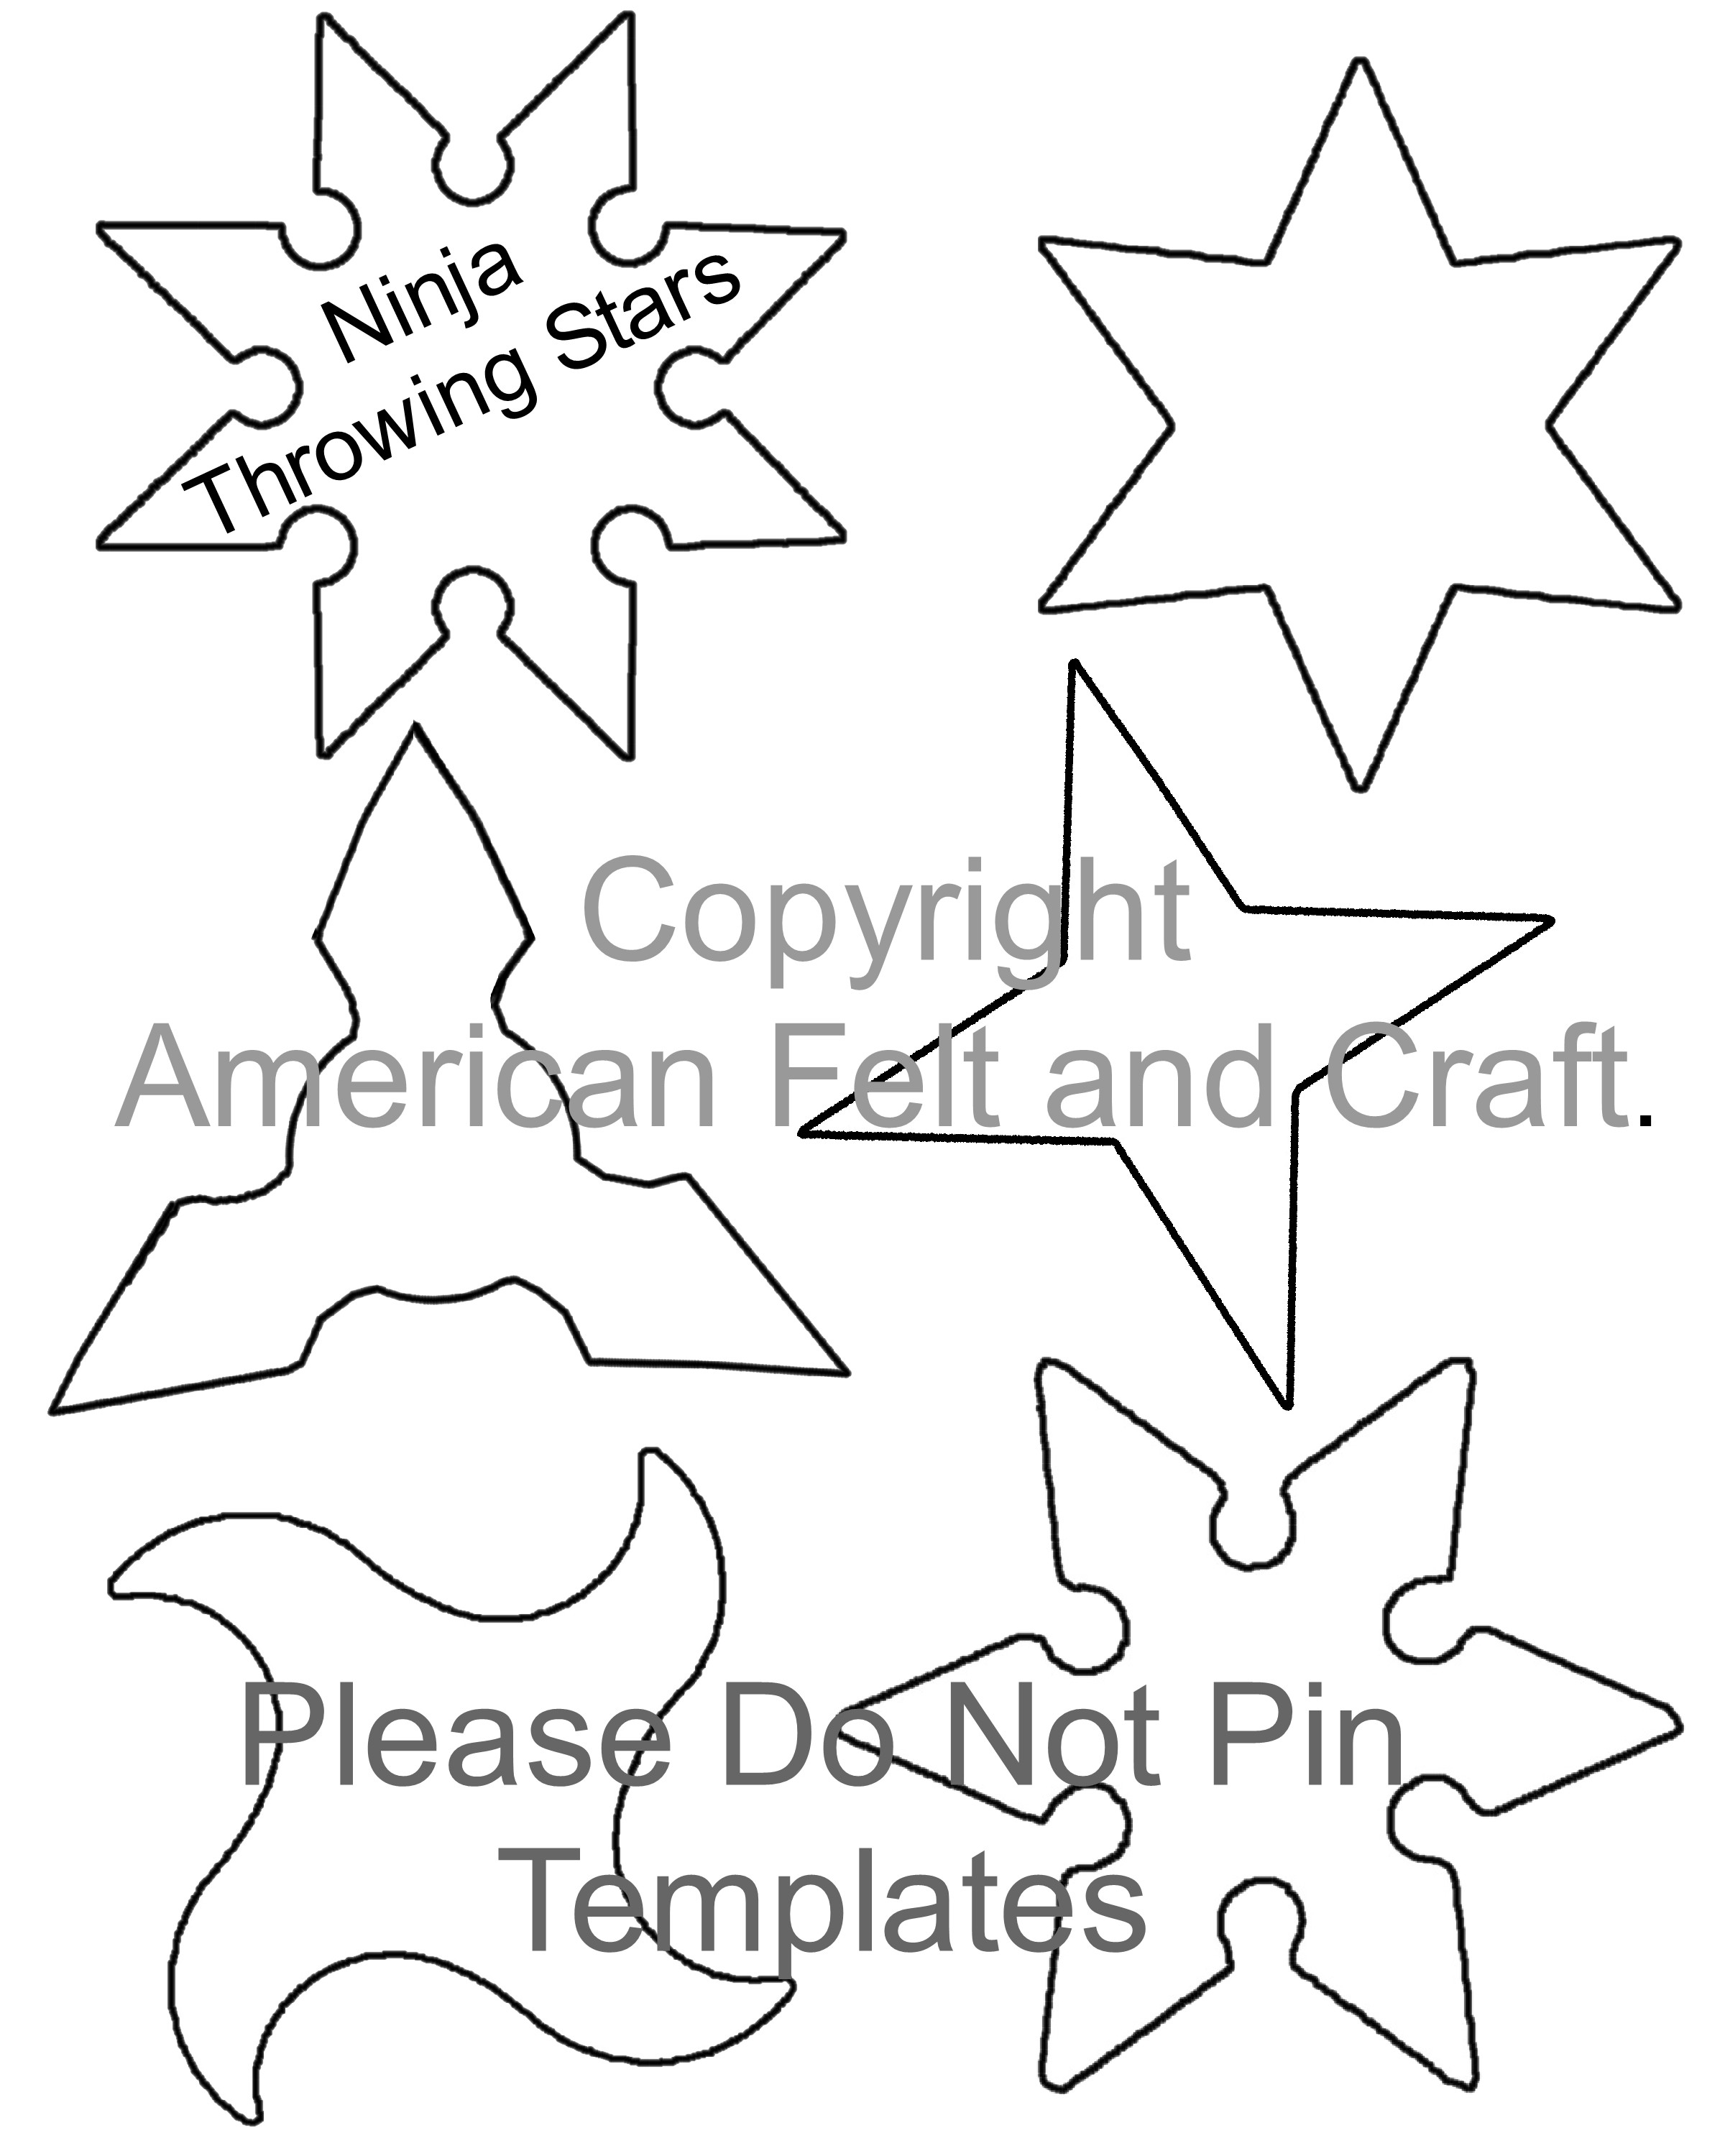 Ninja Star Template Hai- Ya! DIY Fe...